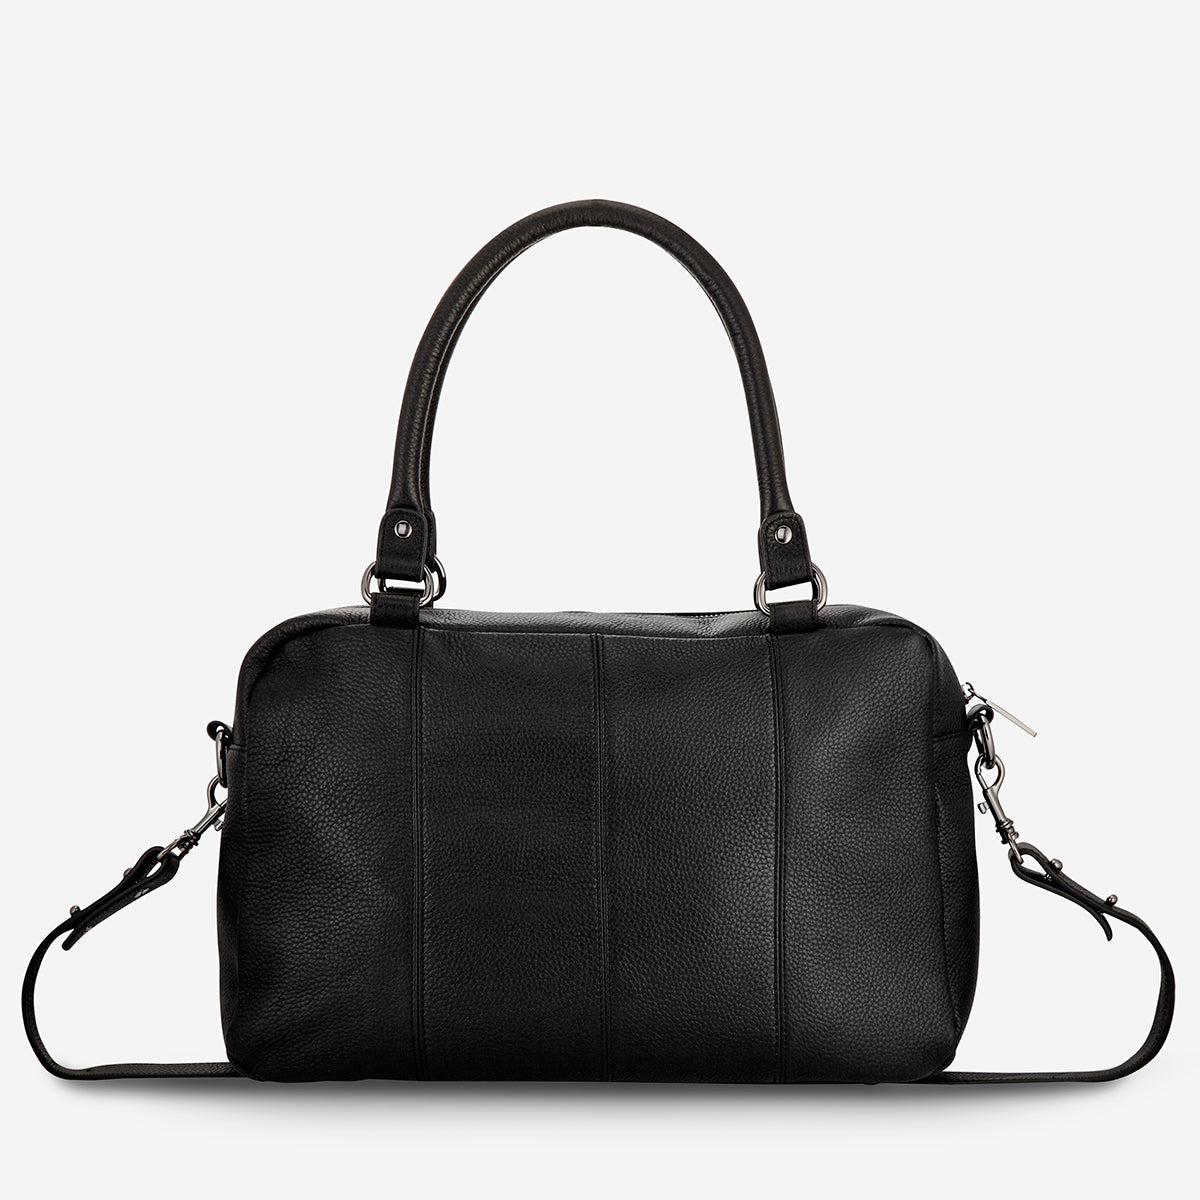 Status Anxiety War With Obvious Women's Leather Bag - Black